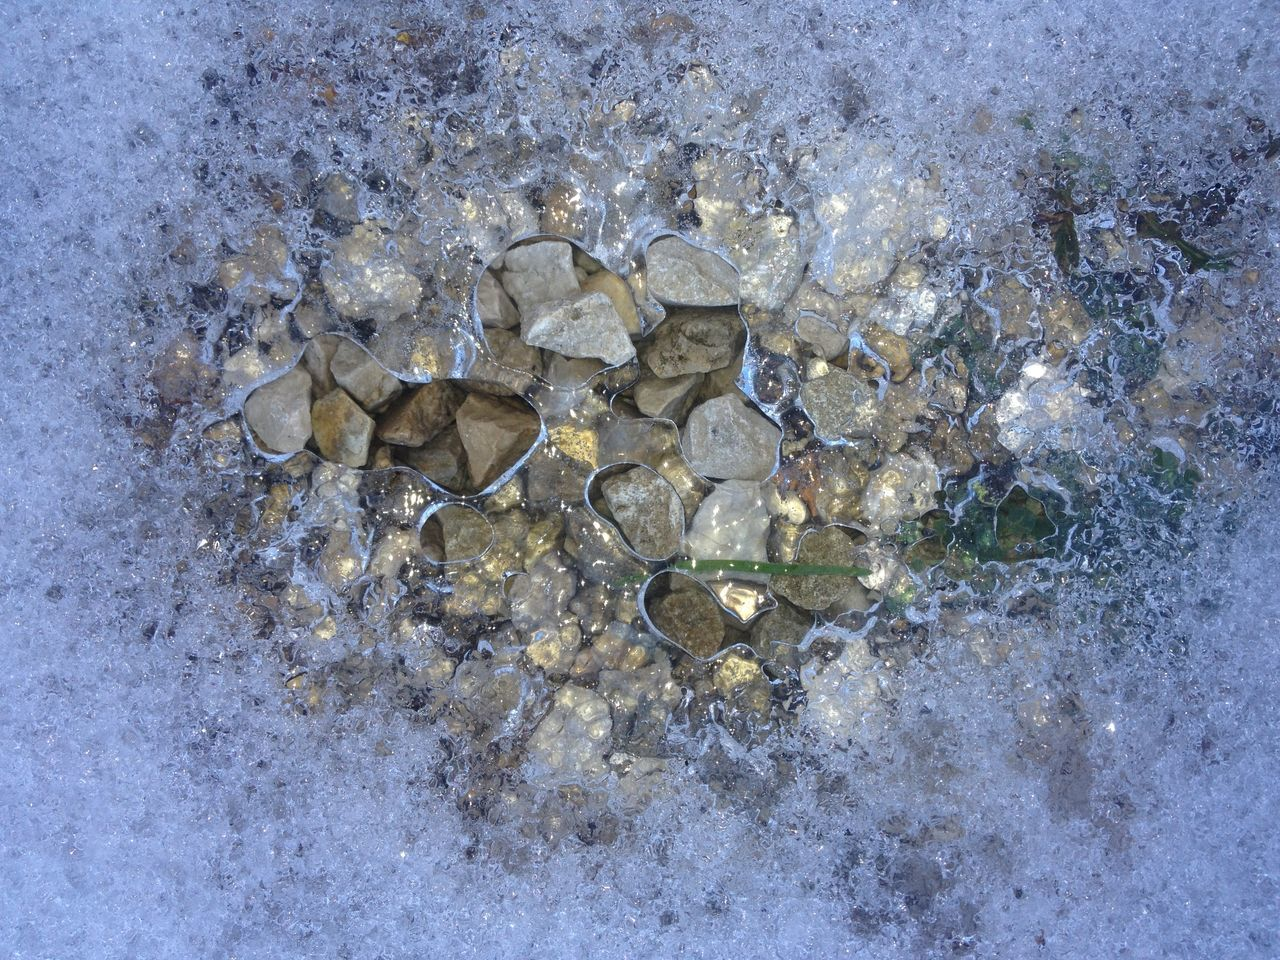 Beauty In Nature Bluelight Close-up High Angle View Ice Icemelting No People Pebbles And Stones Snowmelt Winter